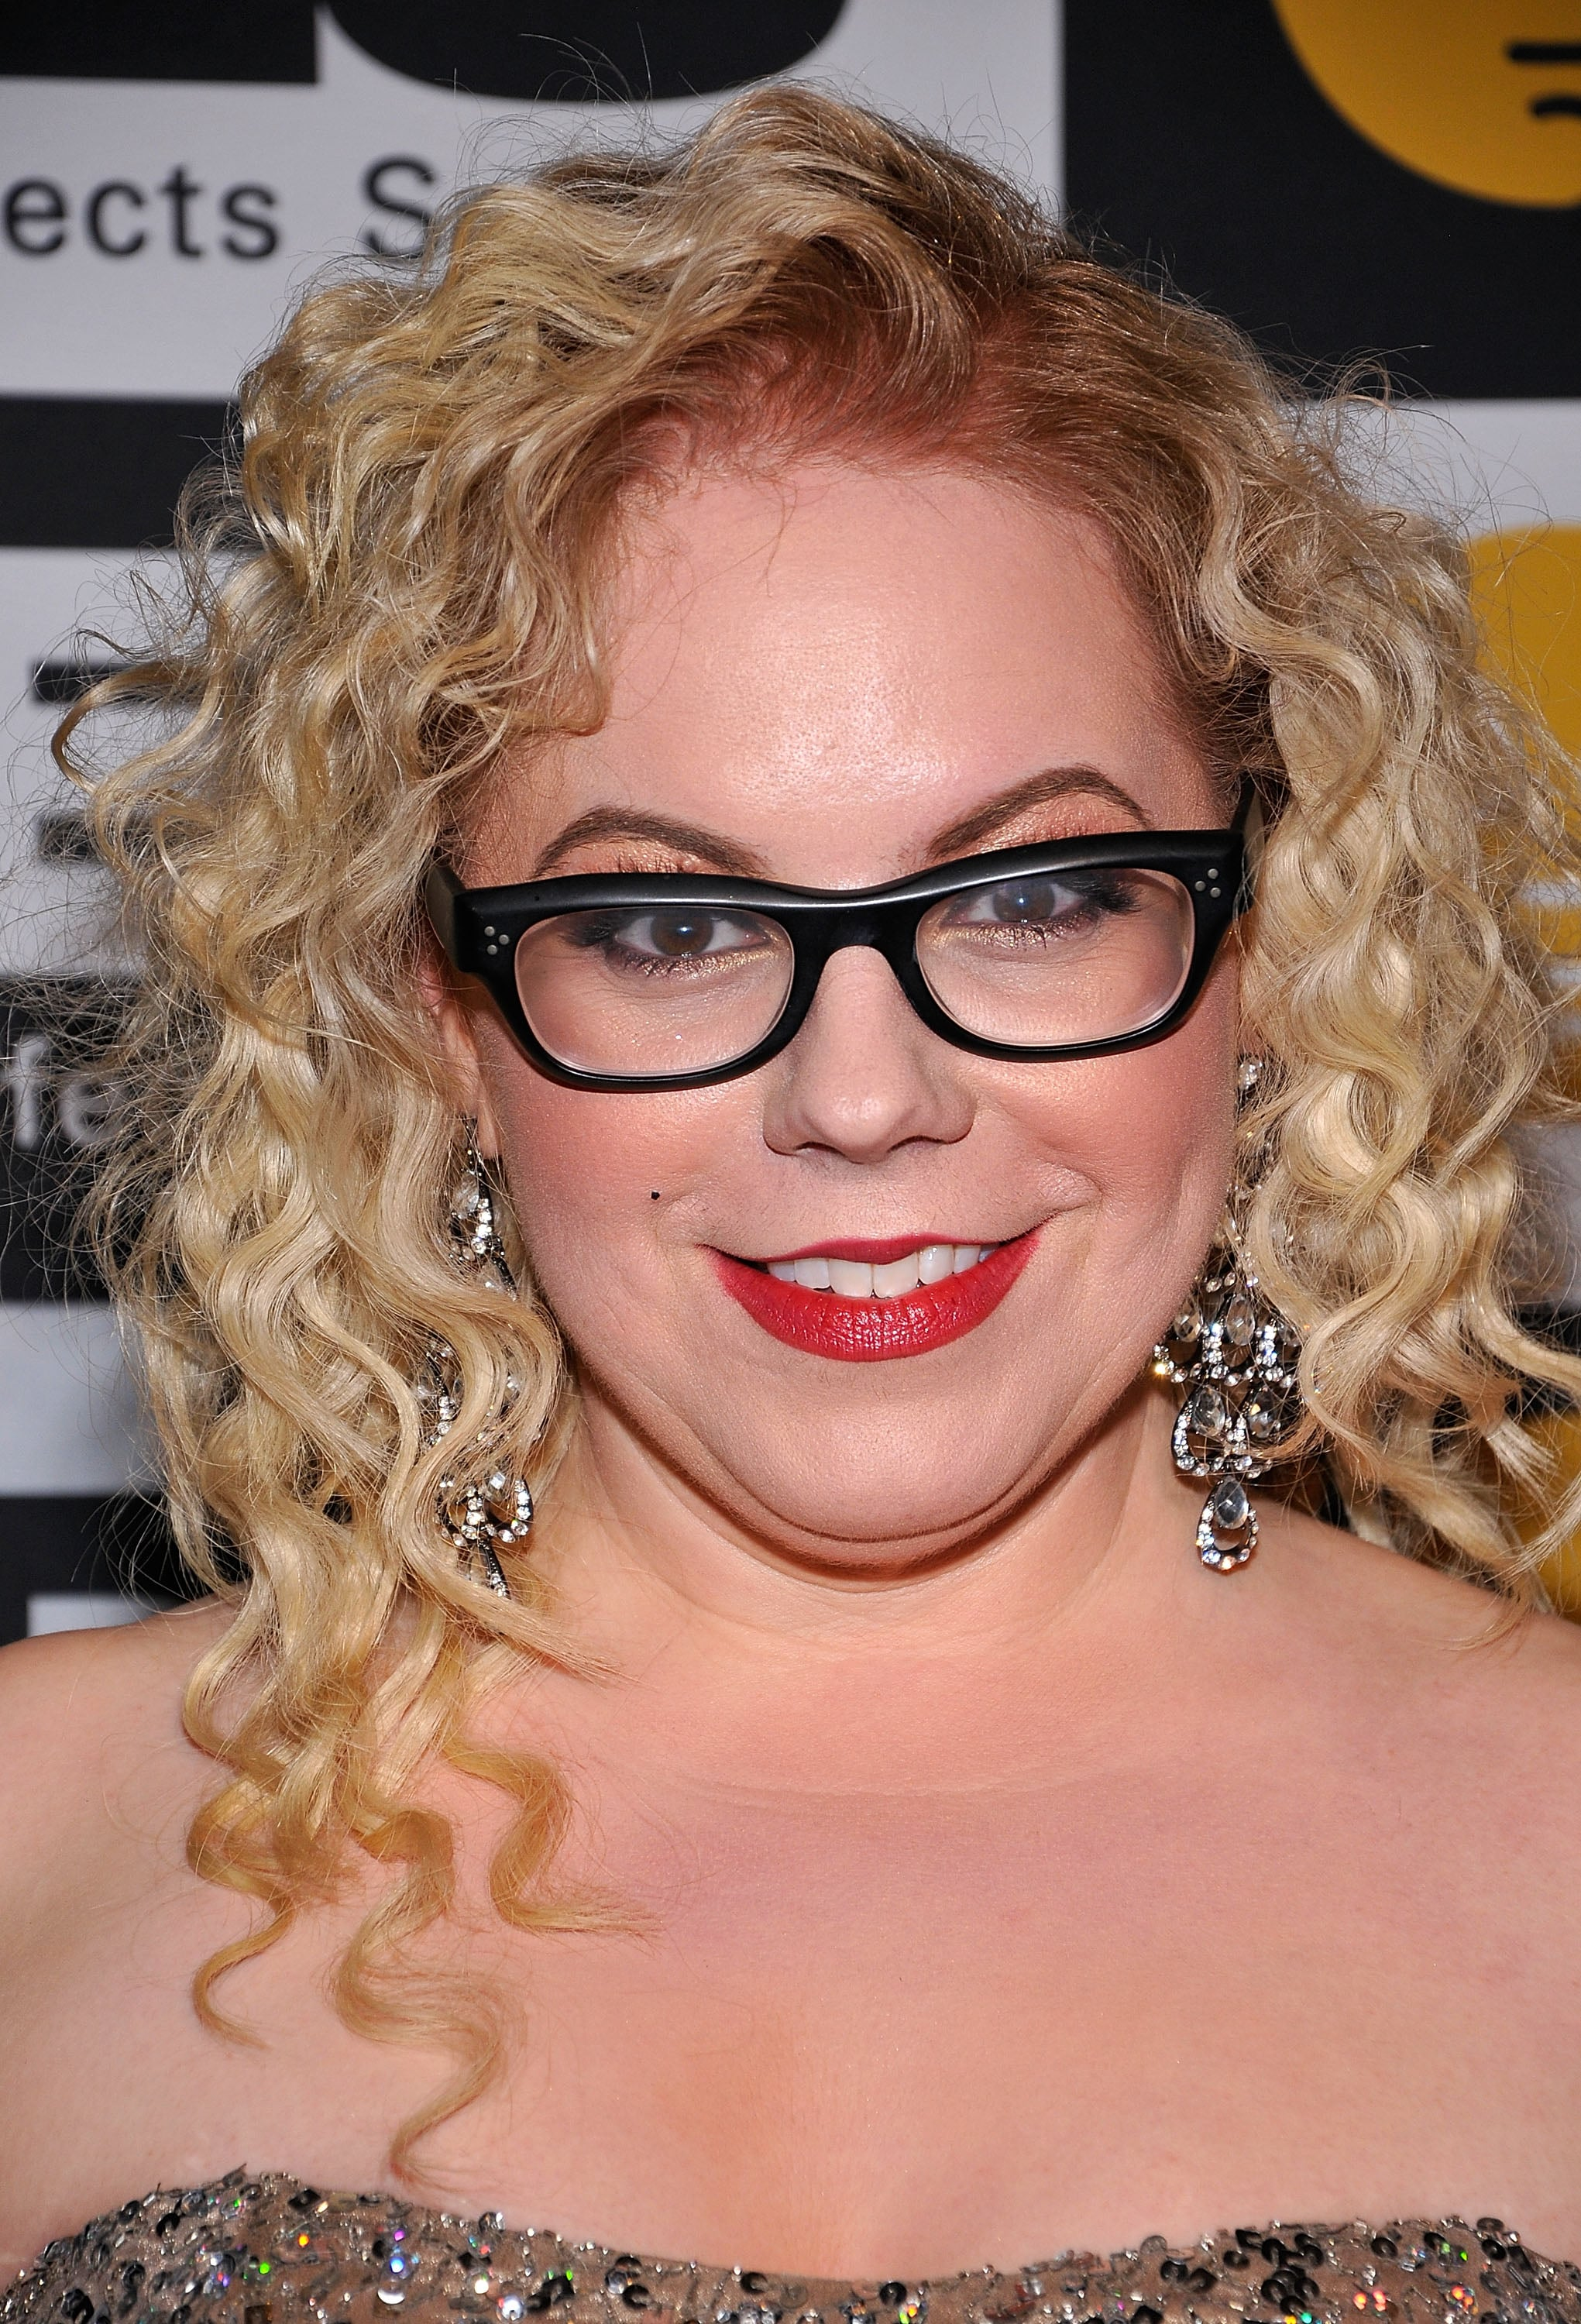 Kirsten vangsness having sex